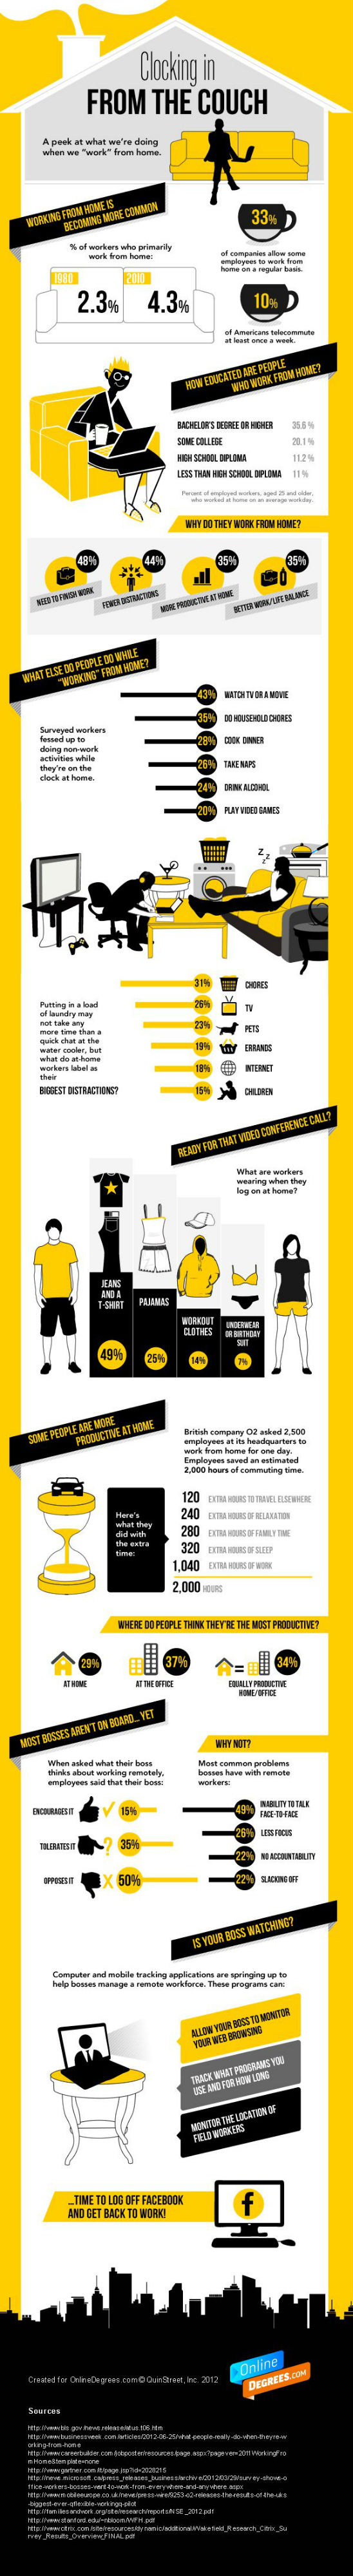 Clocking In From The Couch [Infographic]